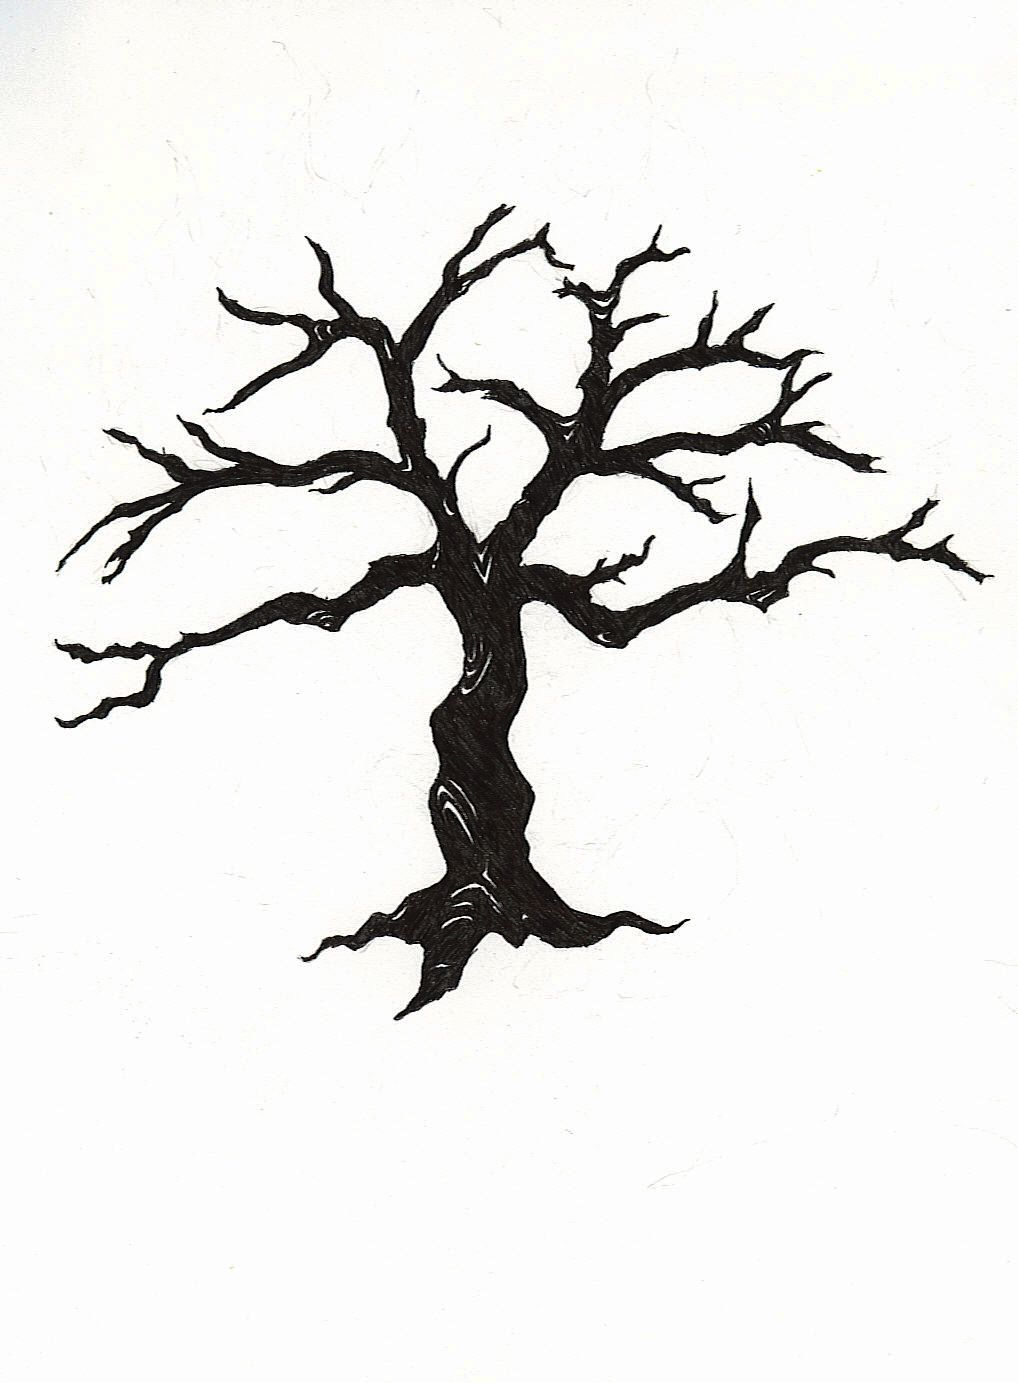 Deadtree clipart image library download dead tree clipart - ClipartFest | Paper Cutting Flora | Dead tree ... image library download